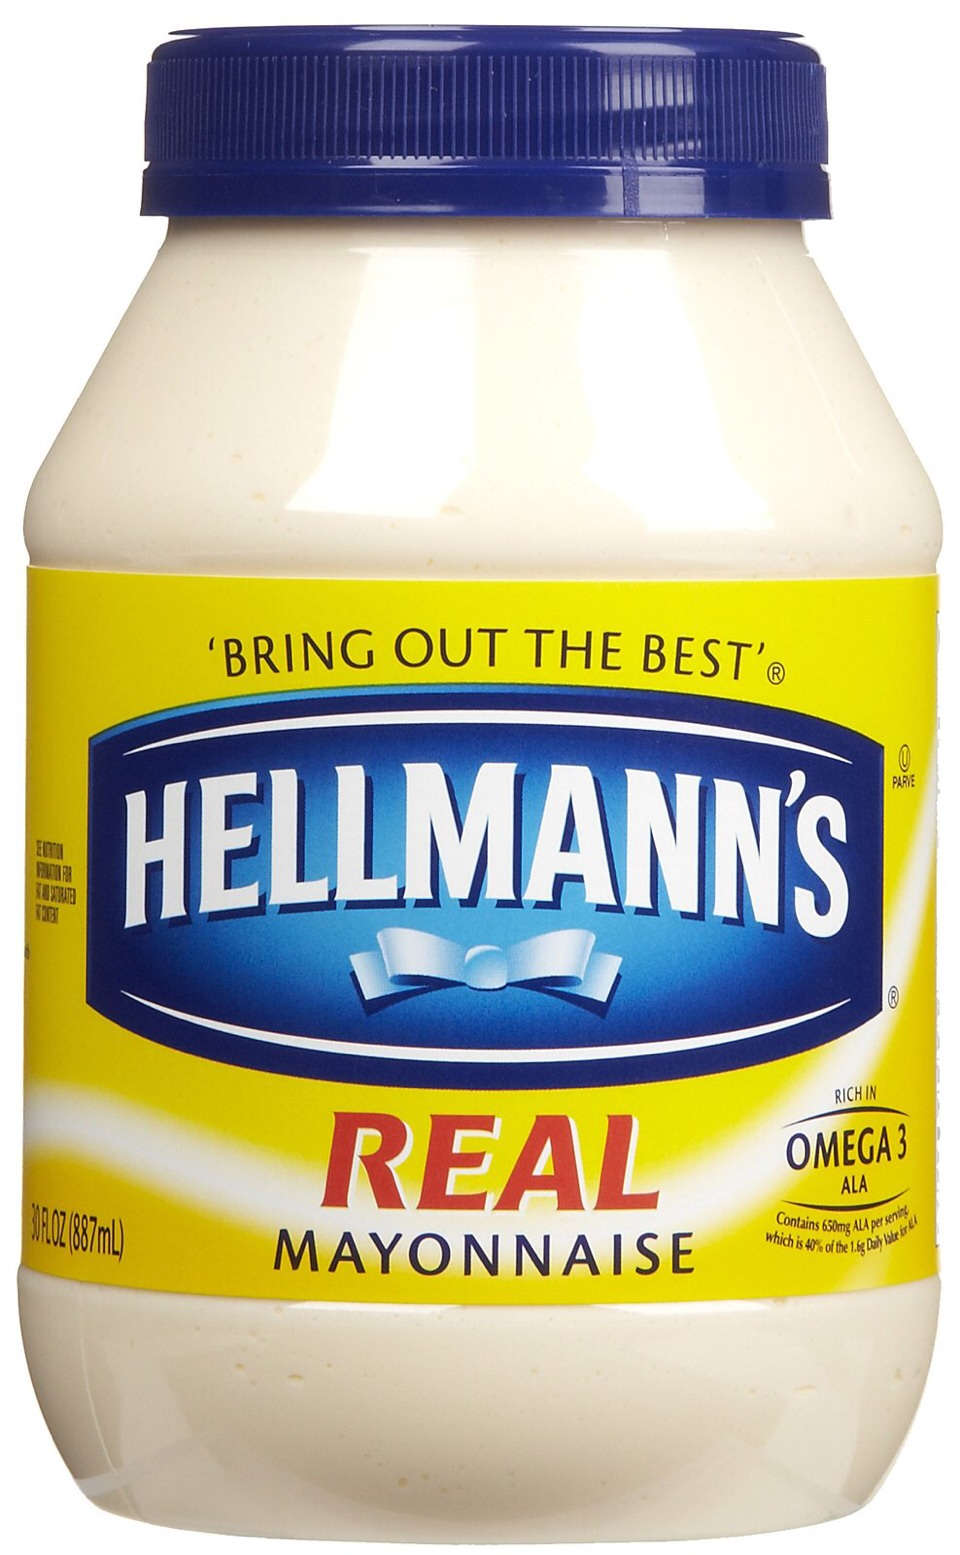 by mixing together mayonnaise